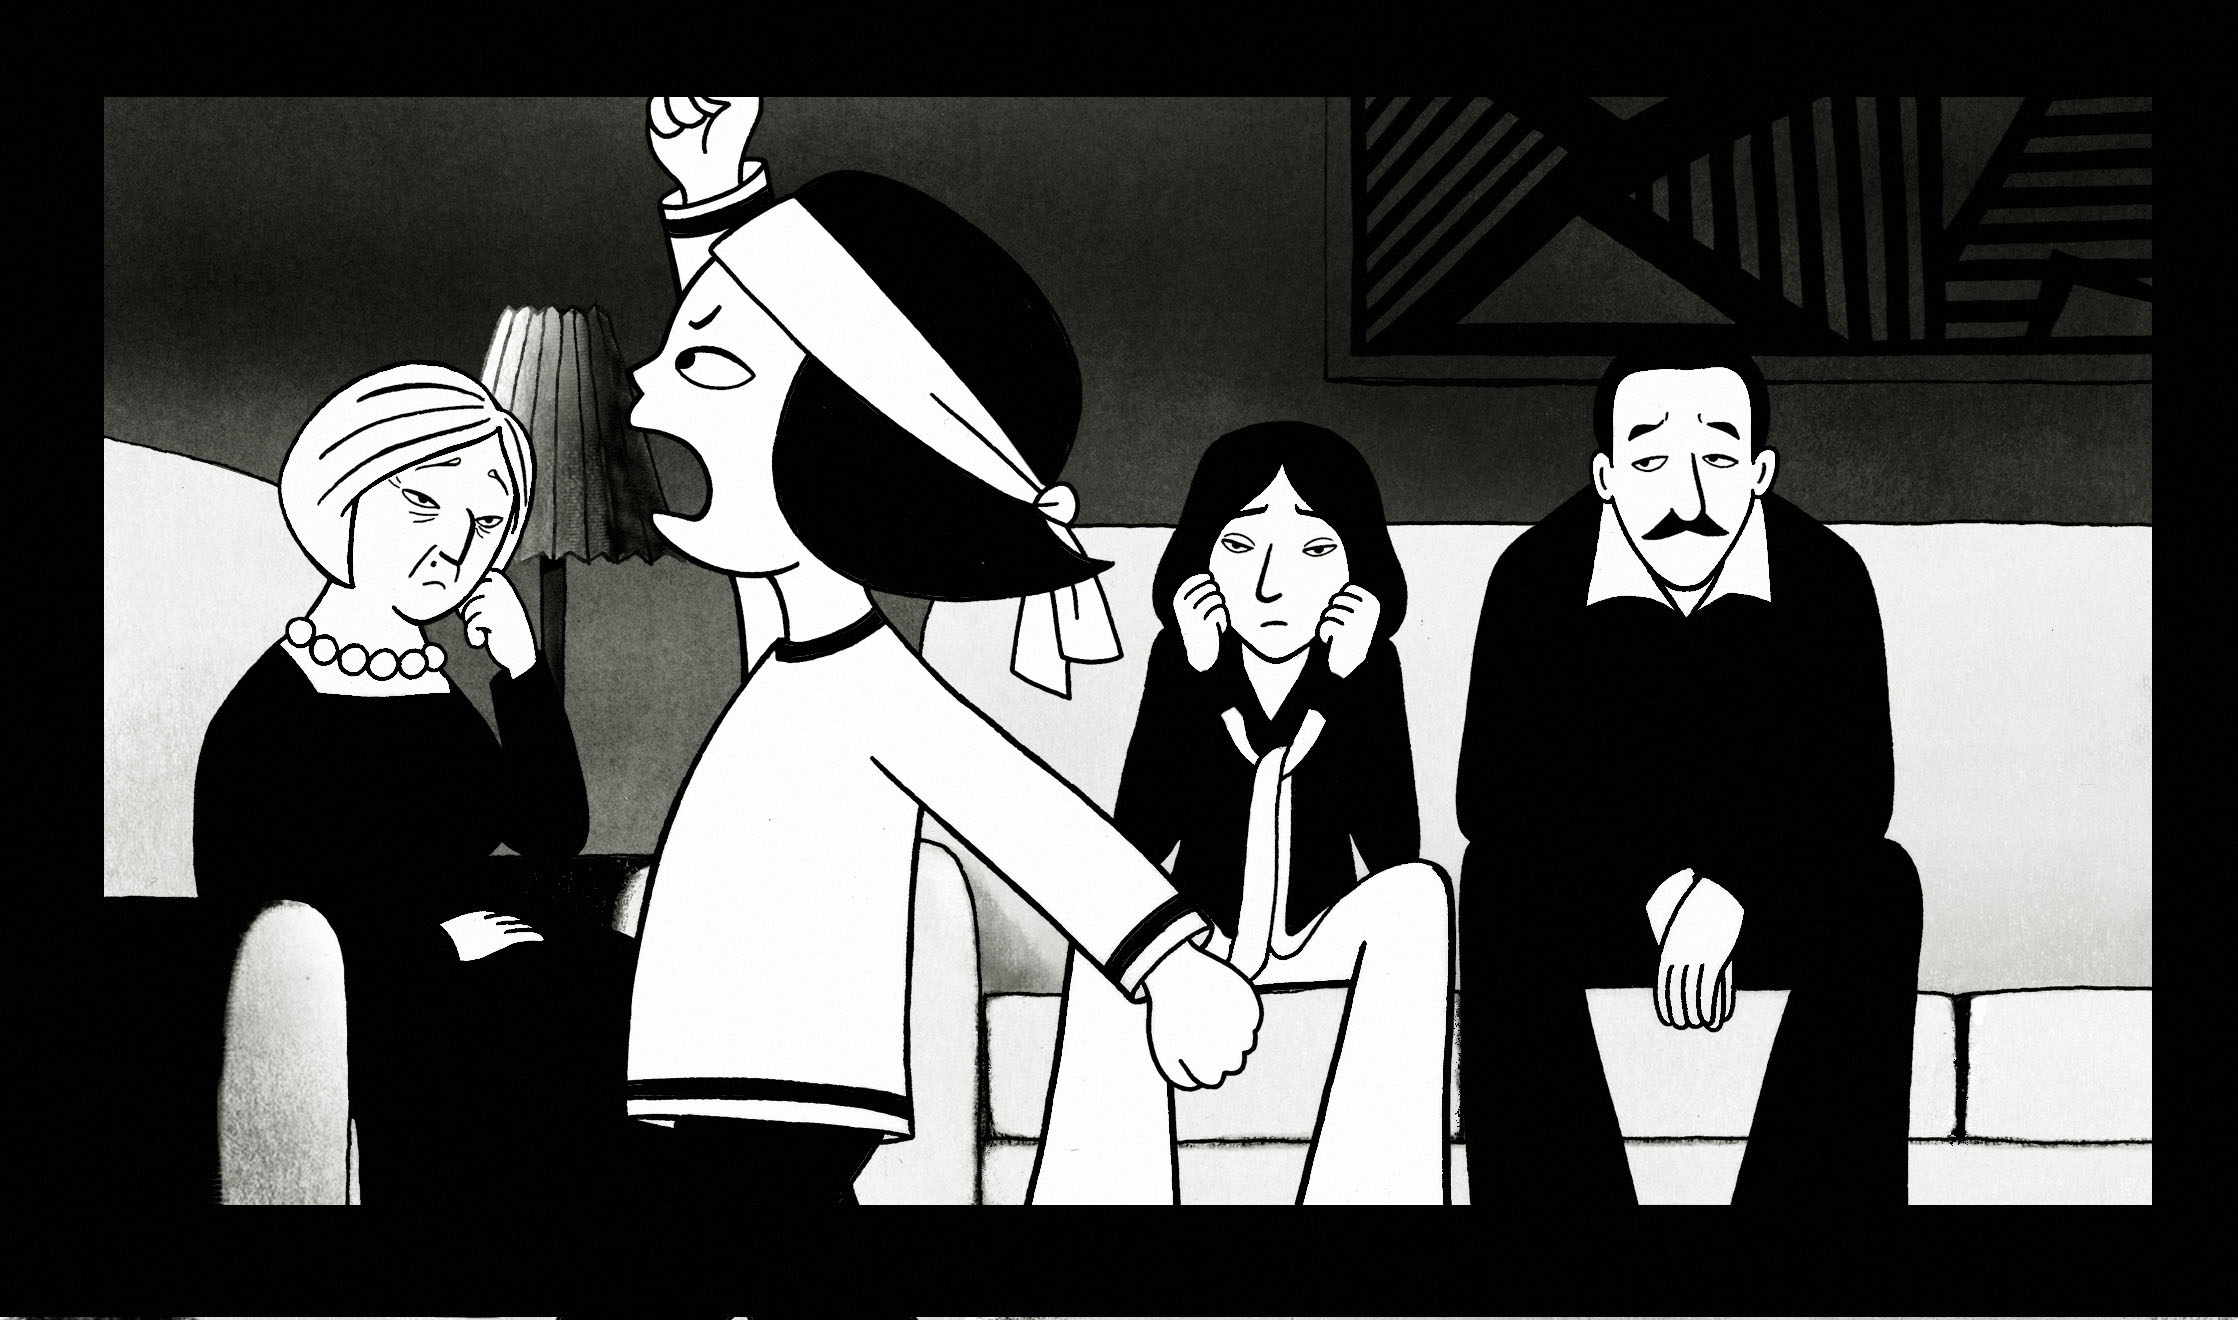 http://josefaparedes.files.wordpress.com/2007/10/persepolis3.jpg